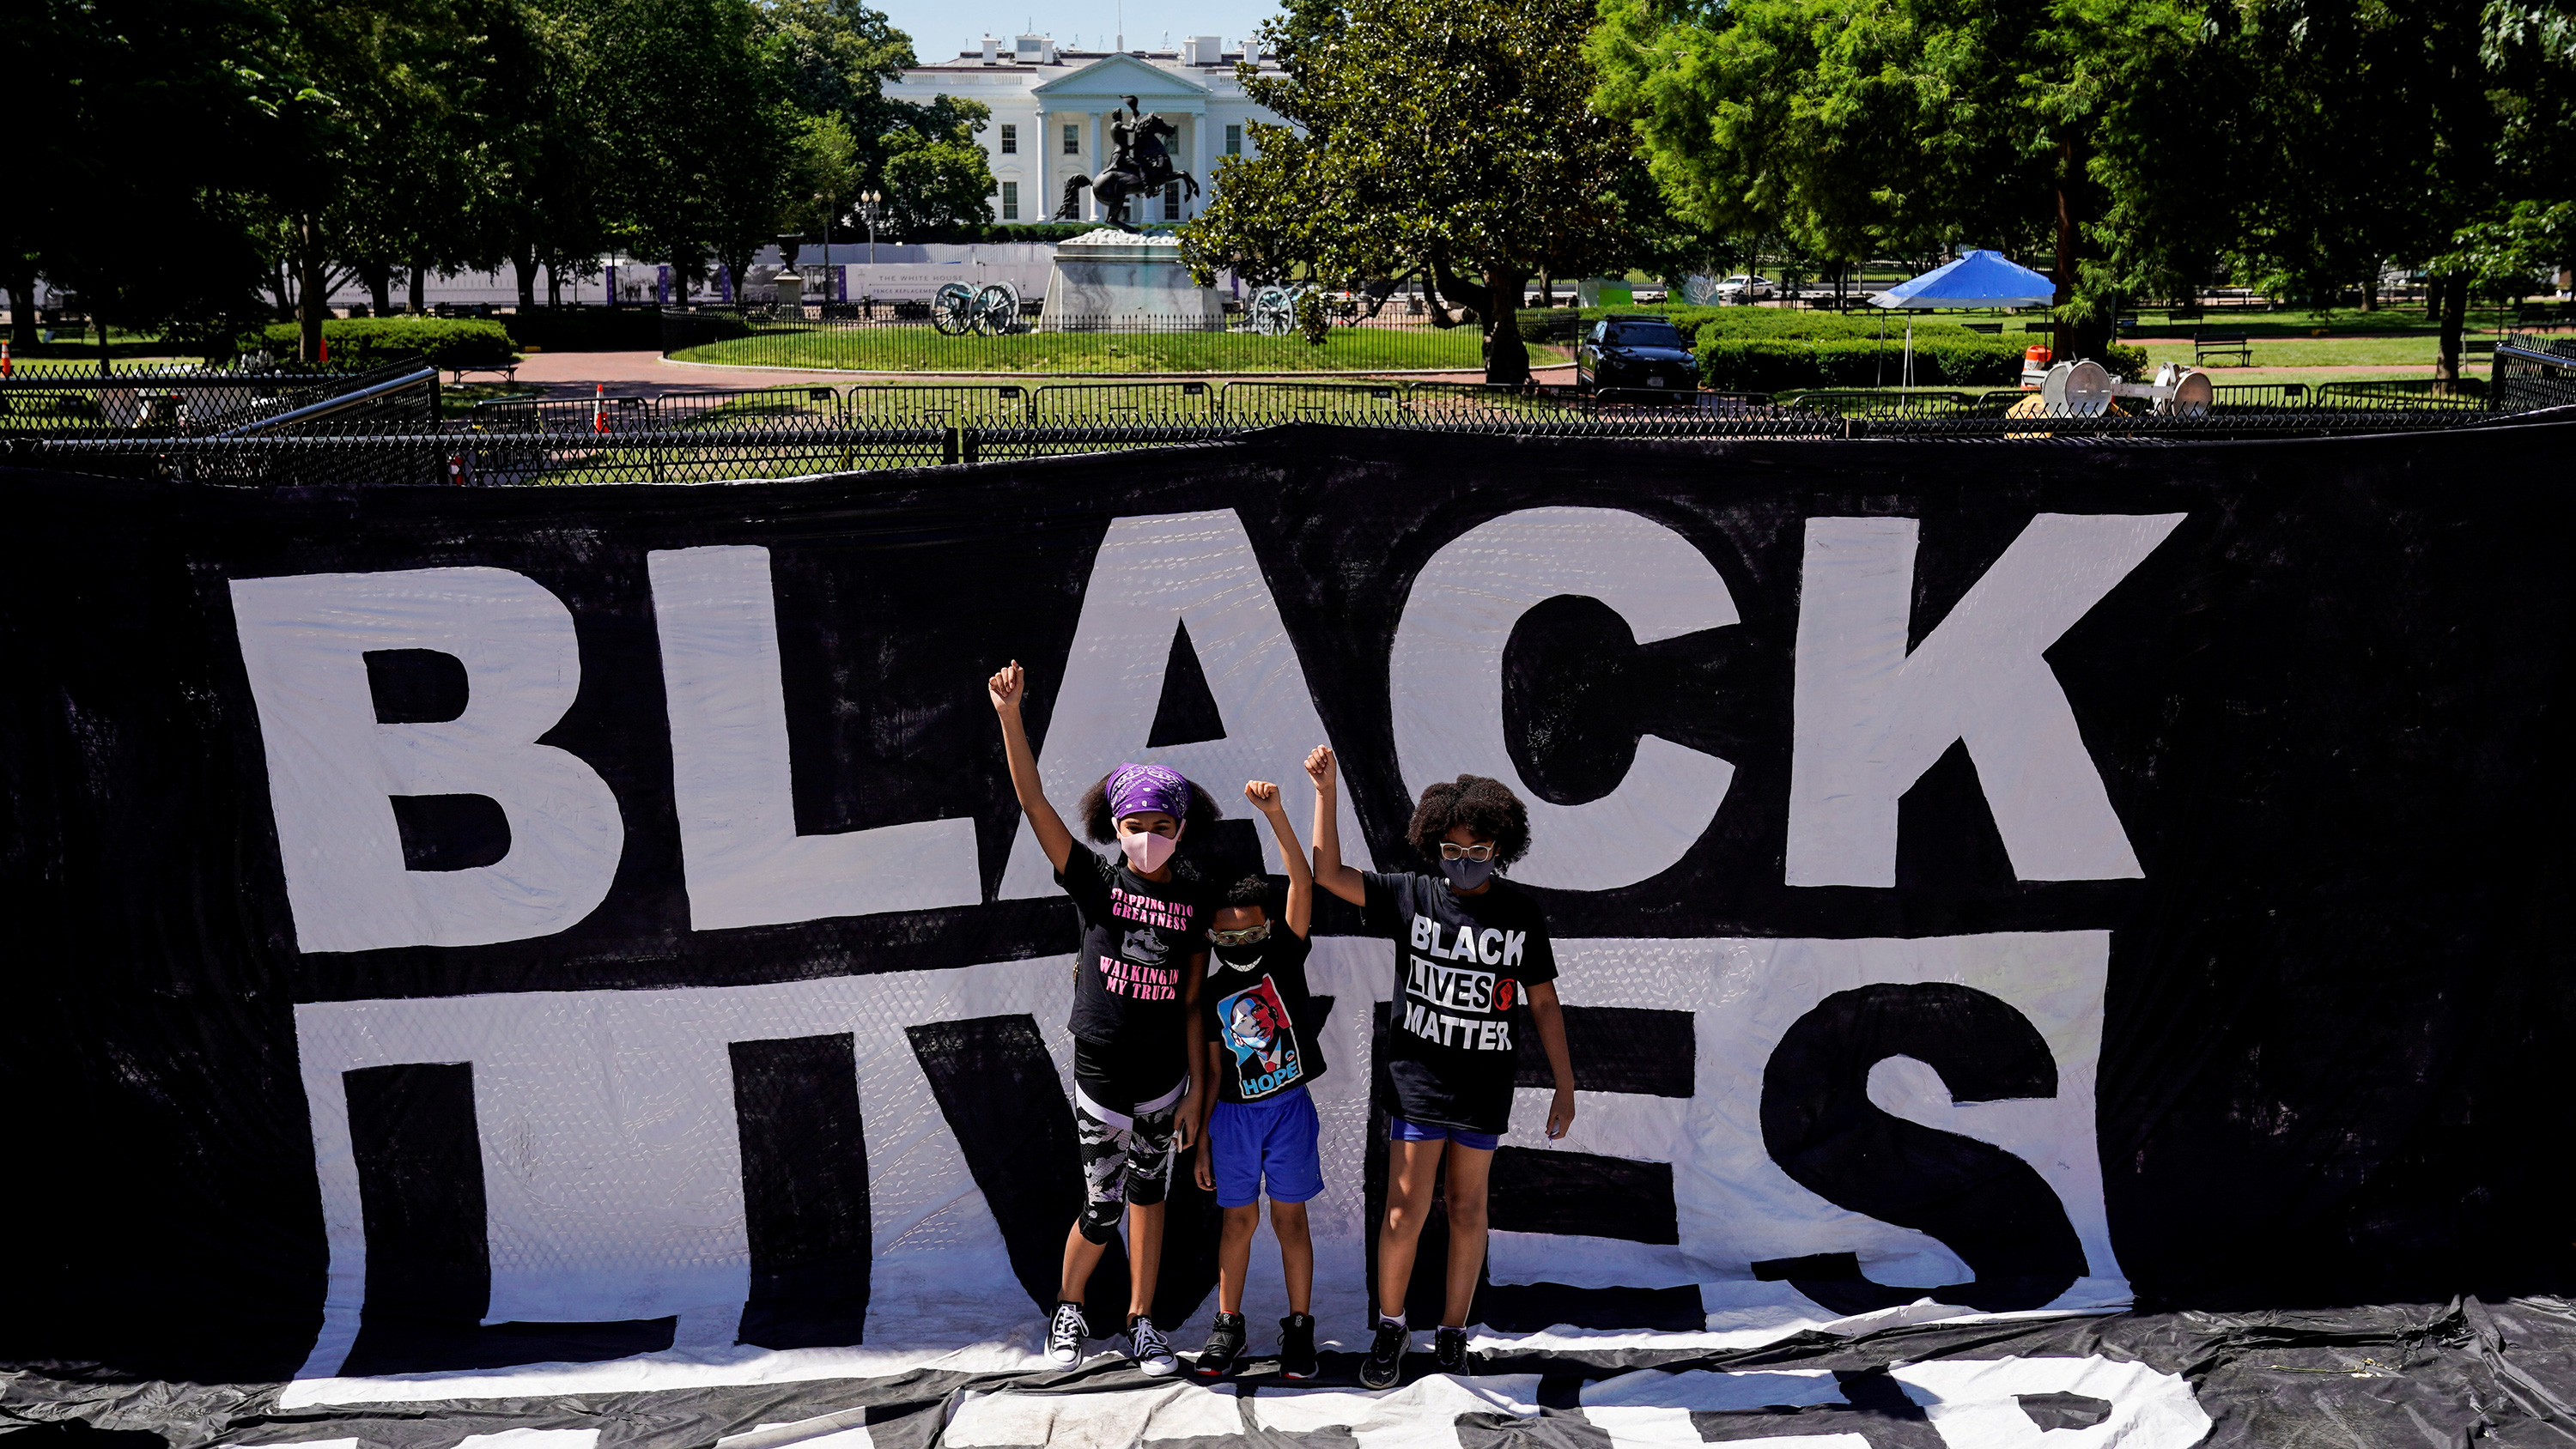 The photo shows a group of small children standing amid black lives matter signs.